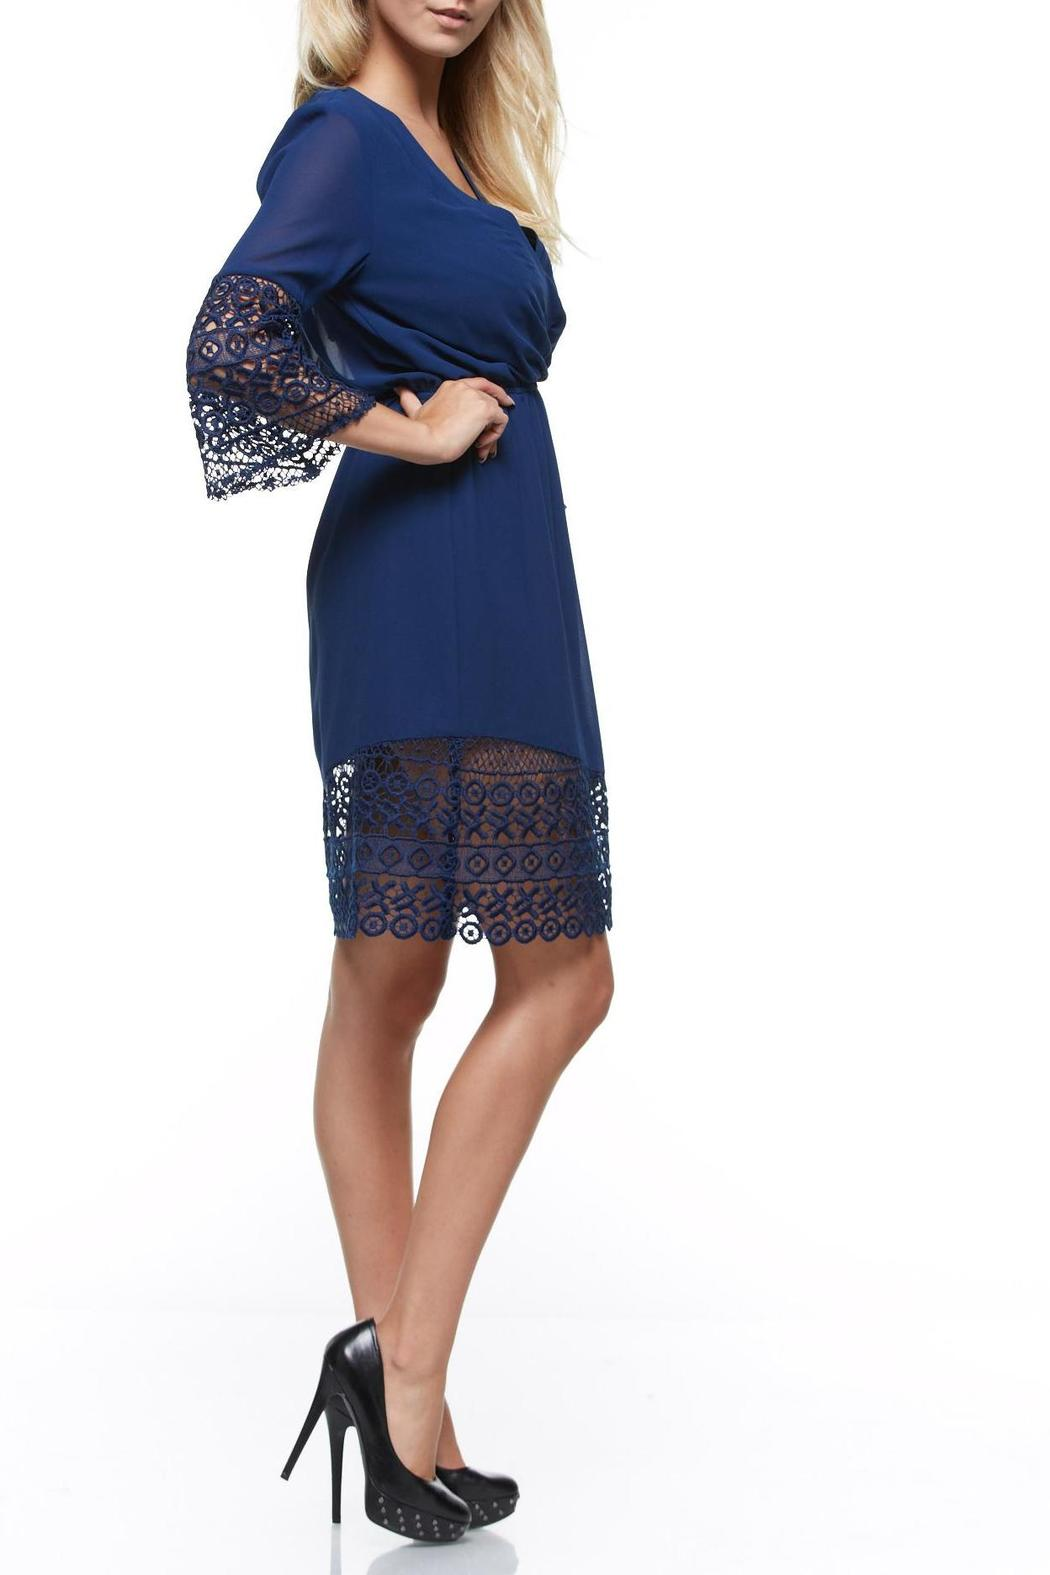 The Clothing Co Short Blue Dress - Front Full Image